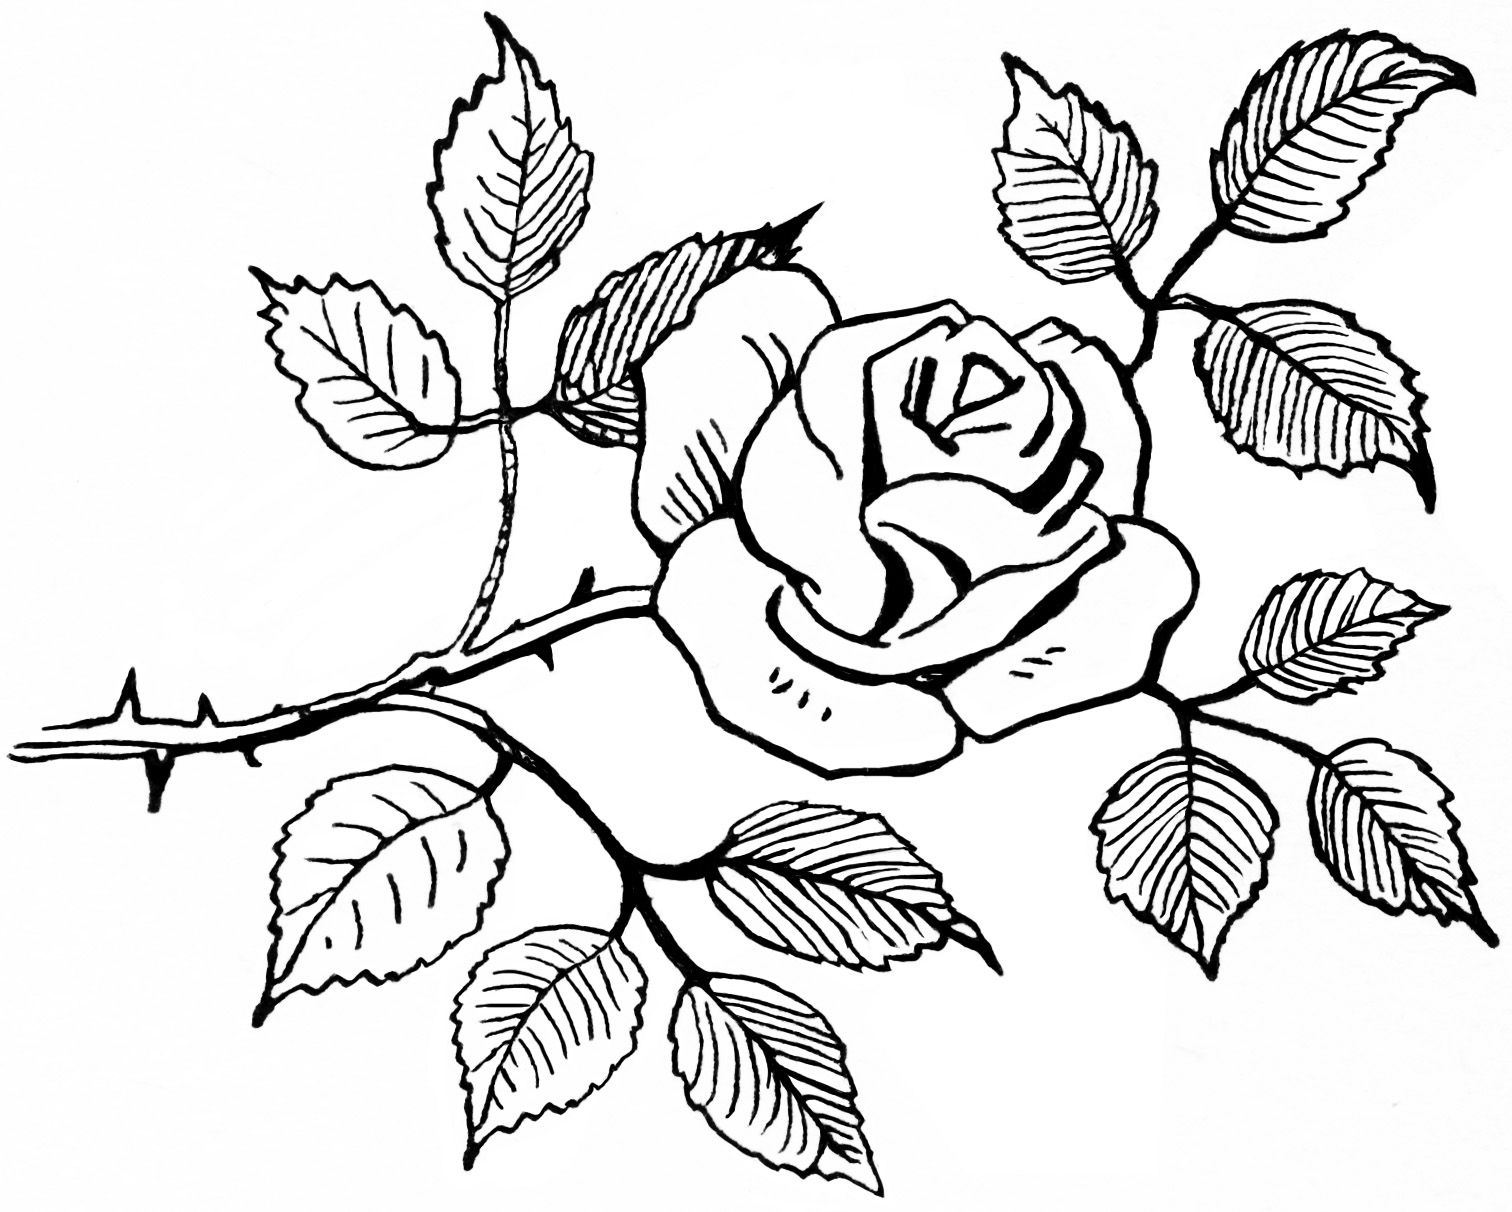 Rose bouquet clipart black and white vector royalty free library Old Design Shop ~ free digital image: black and white rose ... vector royalty free library